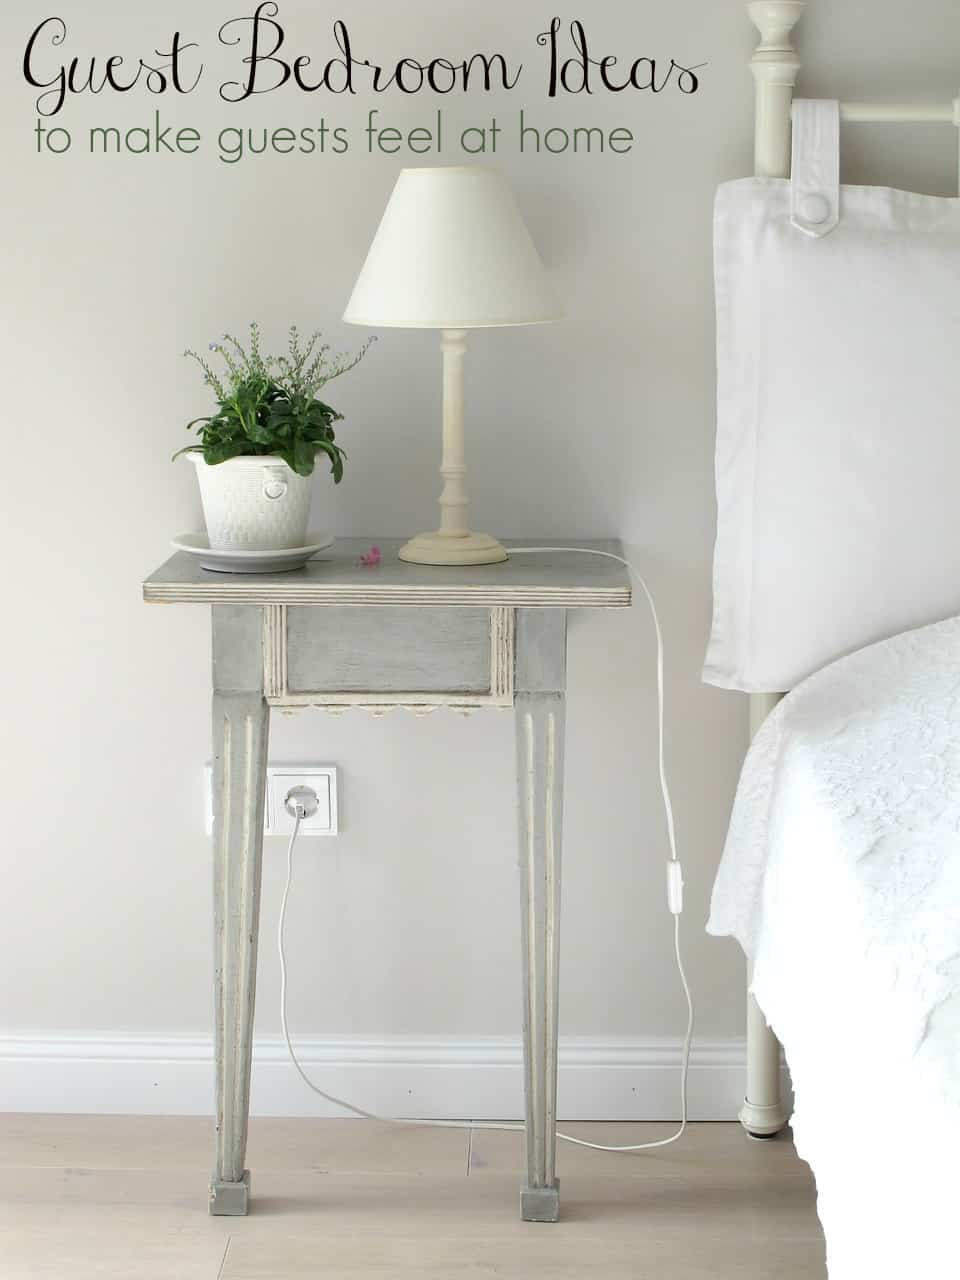 Having company?  Check out these guest bedroom ideas to help your guests feel right at home!